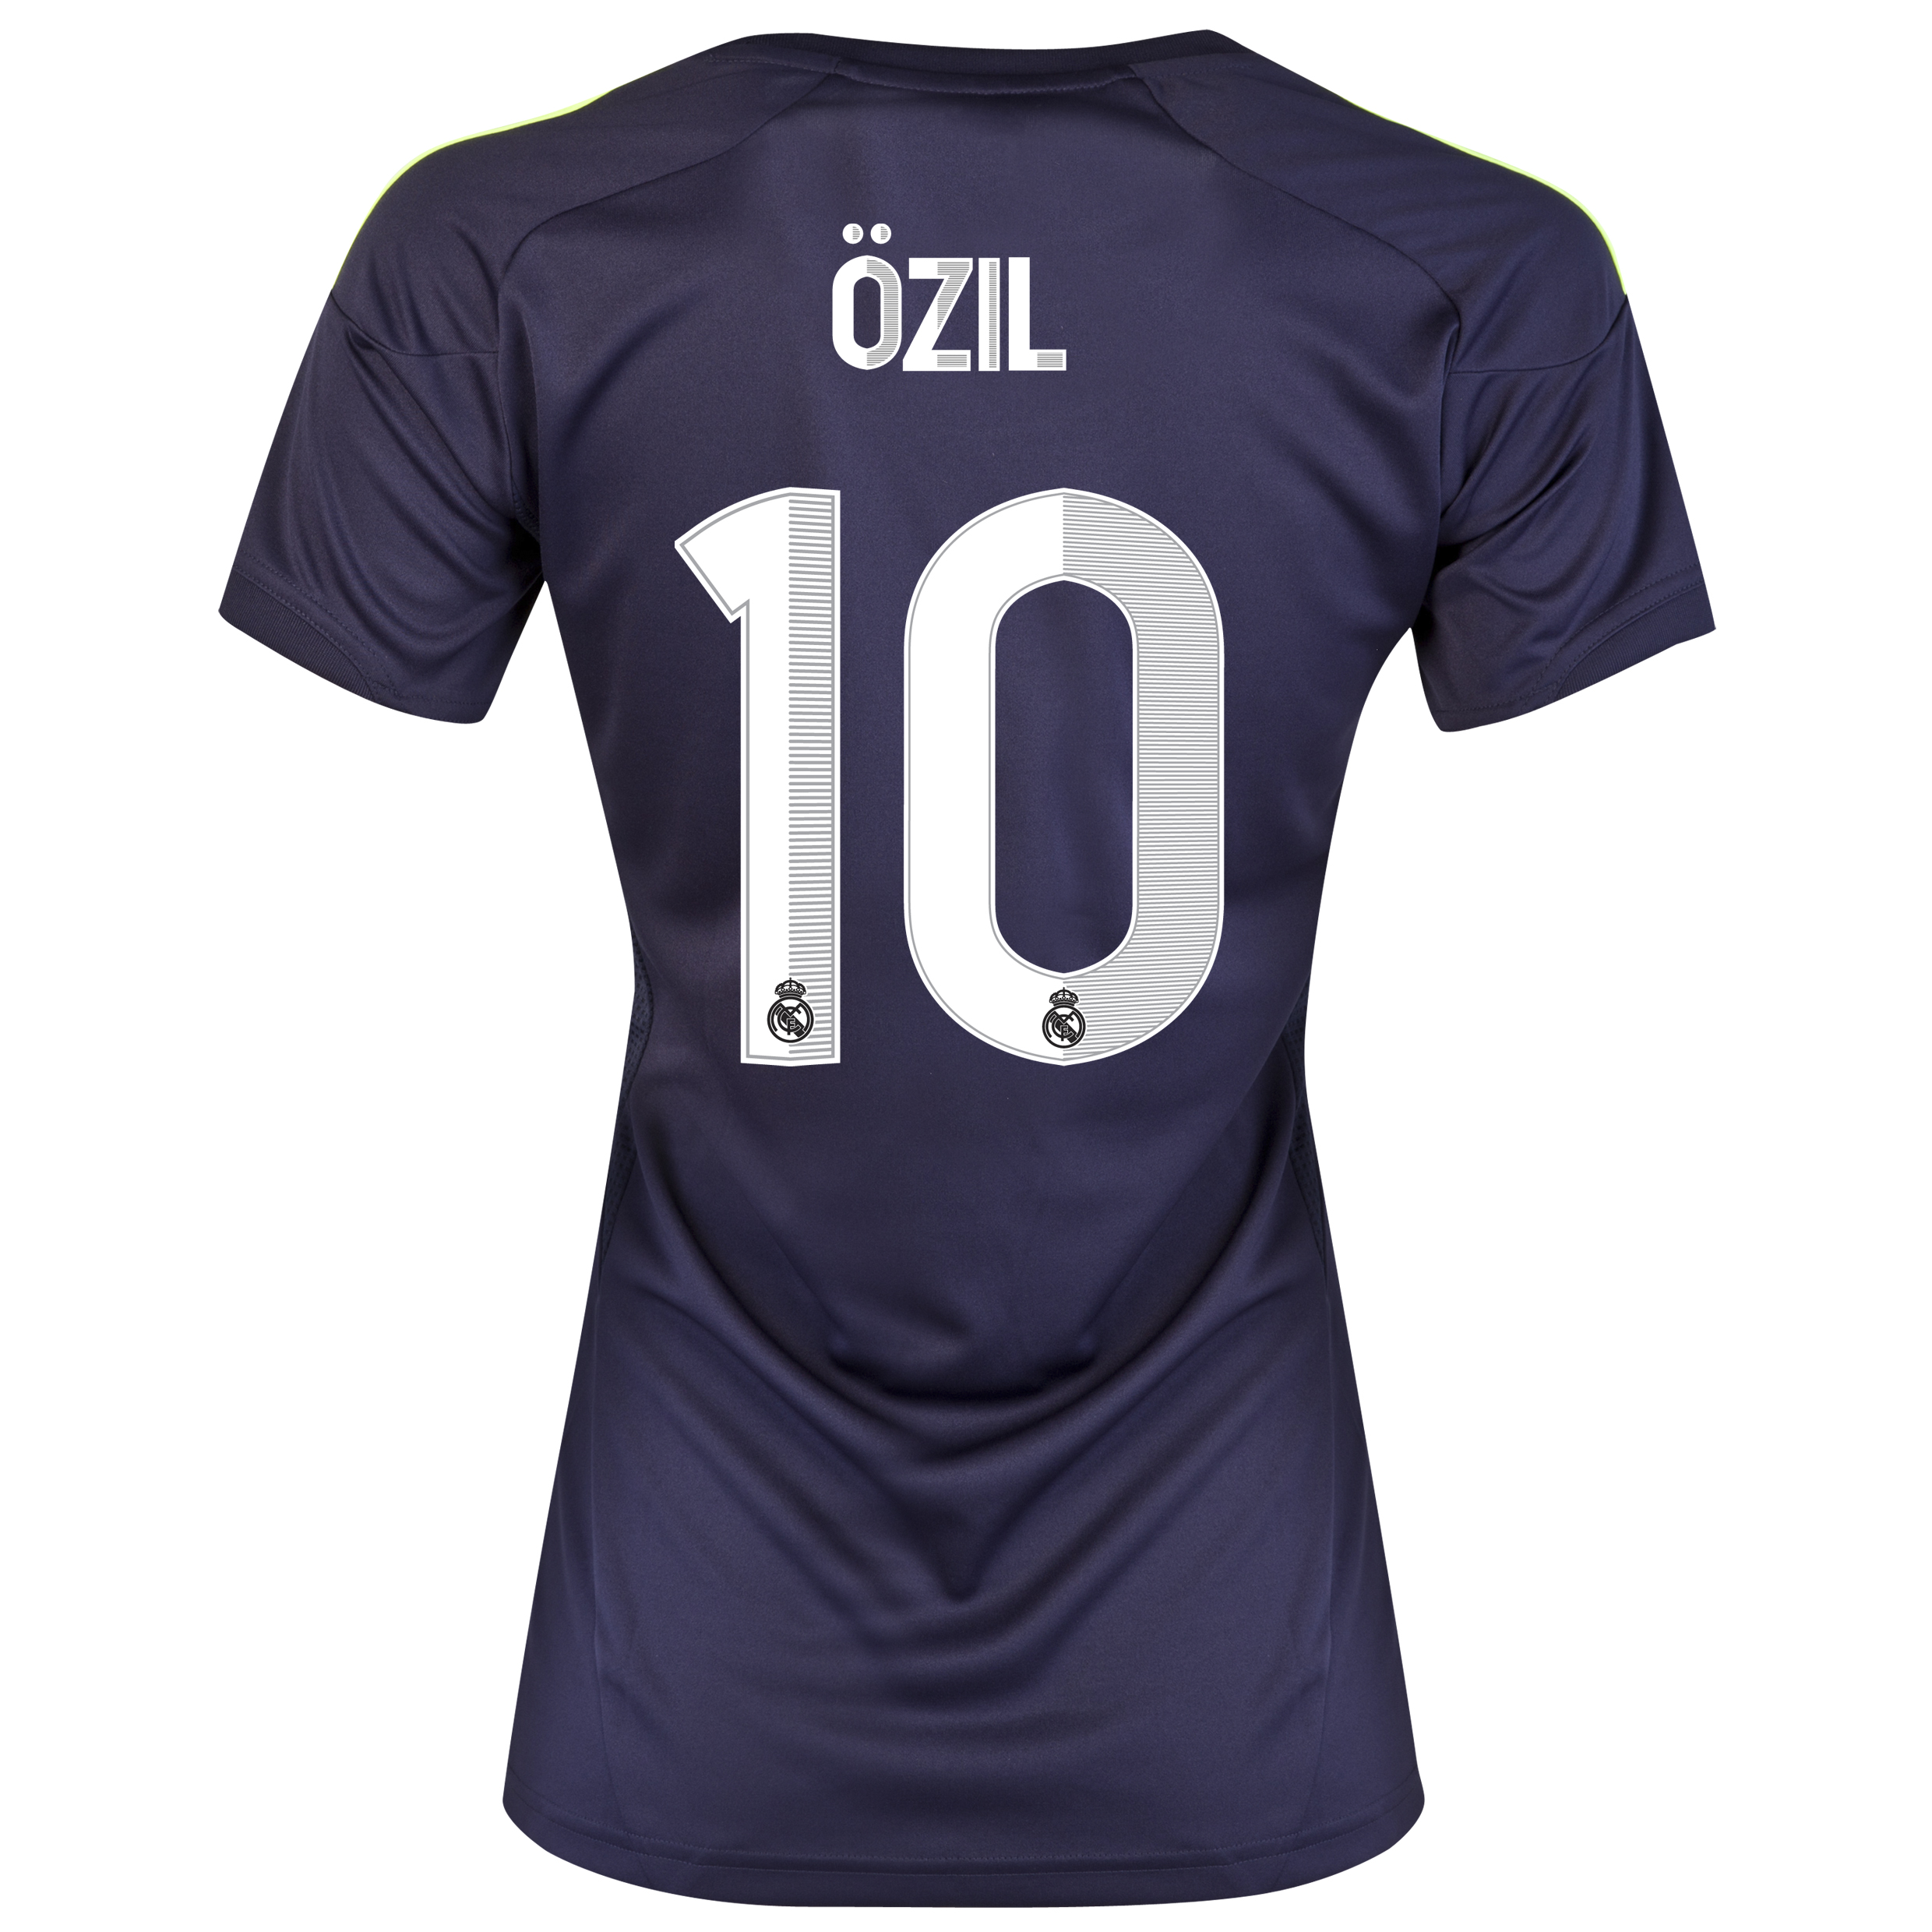 Real Madrid Away Shirt 2012/13 - Womens with zil 10 printing